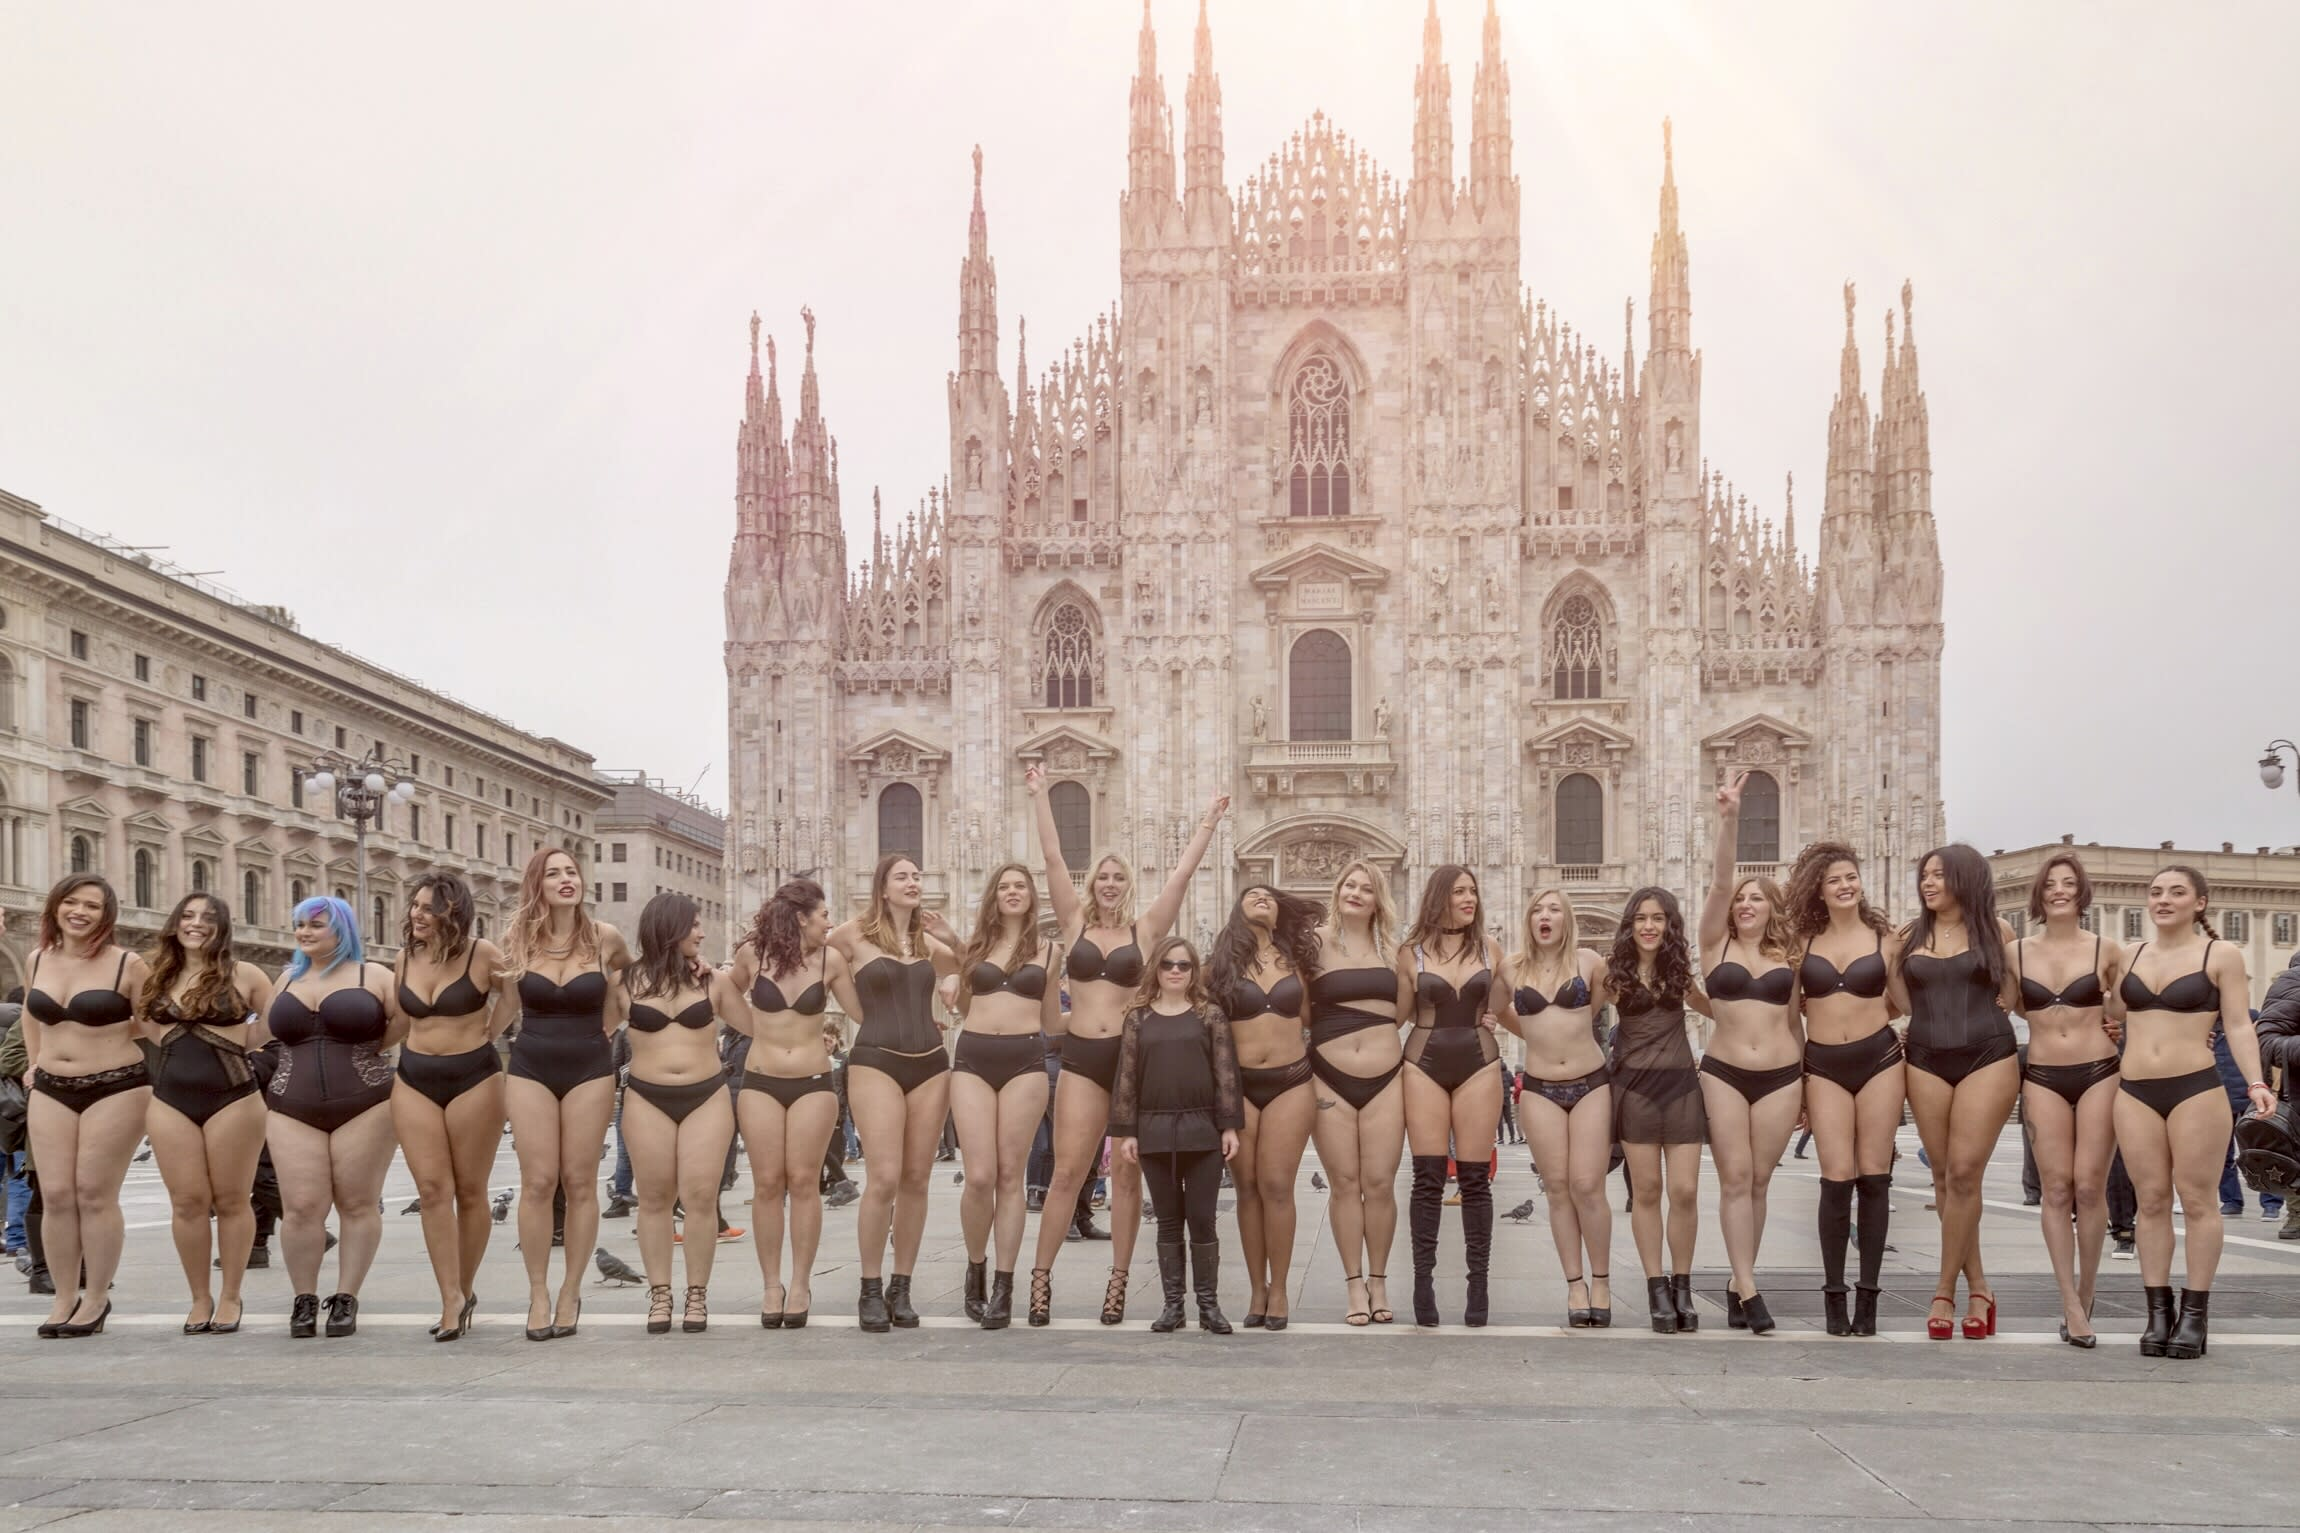 Italian Women Pose in front of a cathedral in their underwear